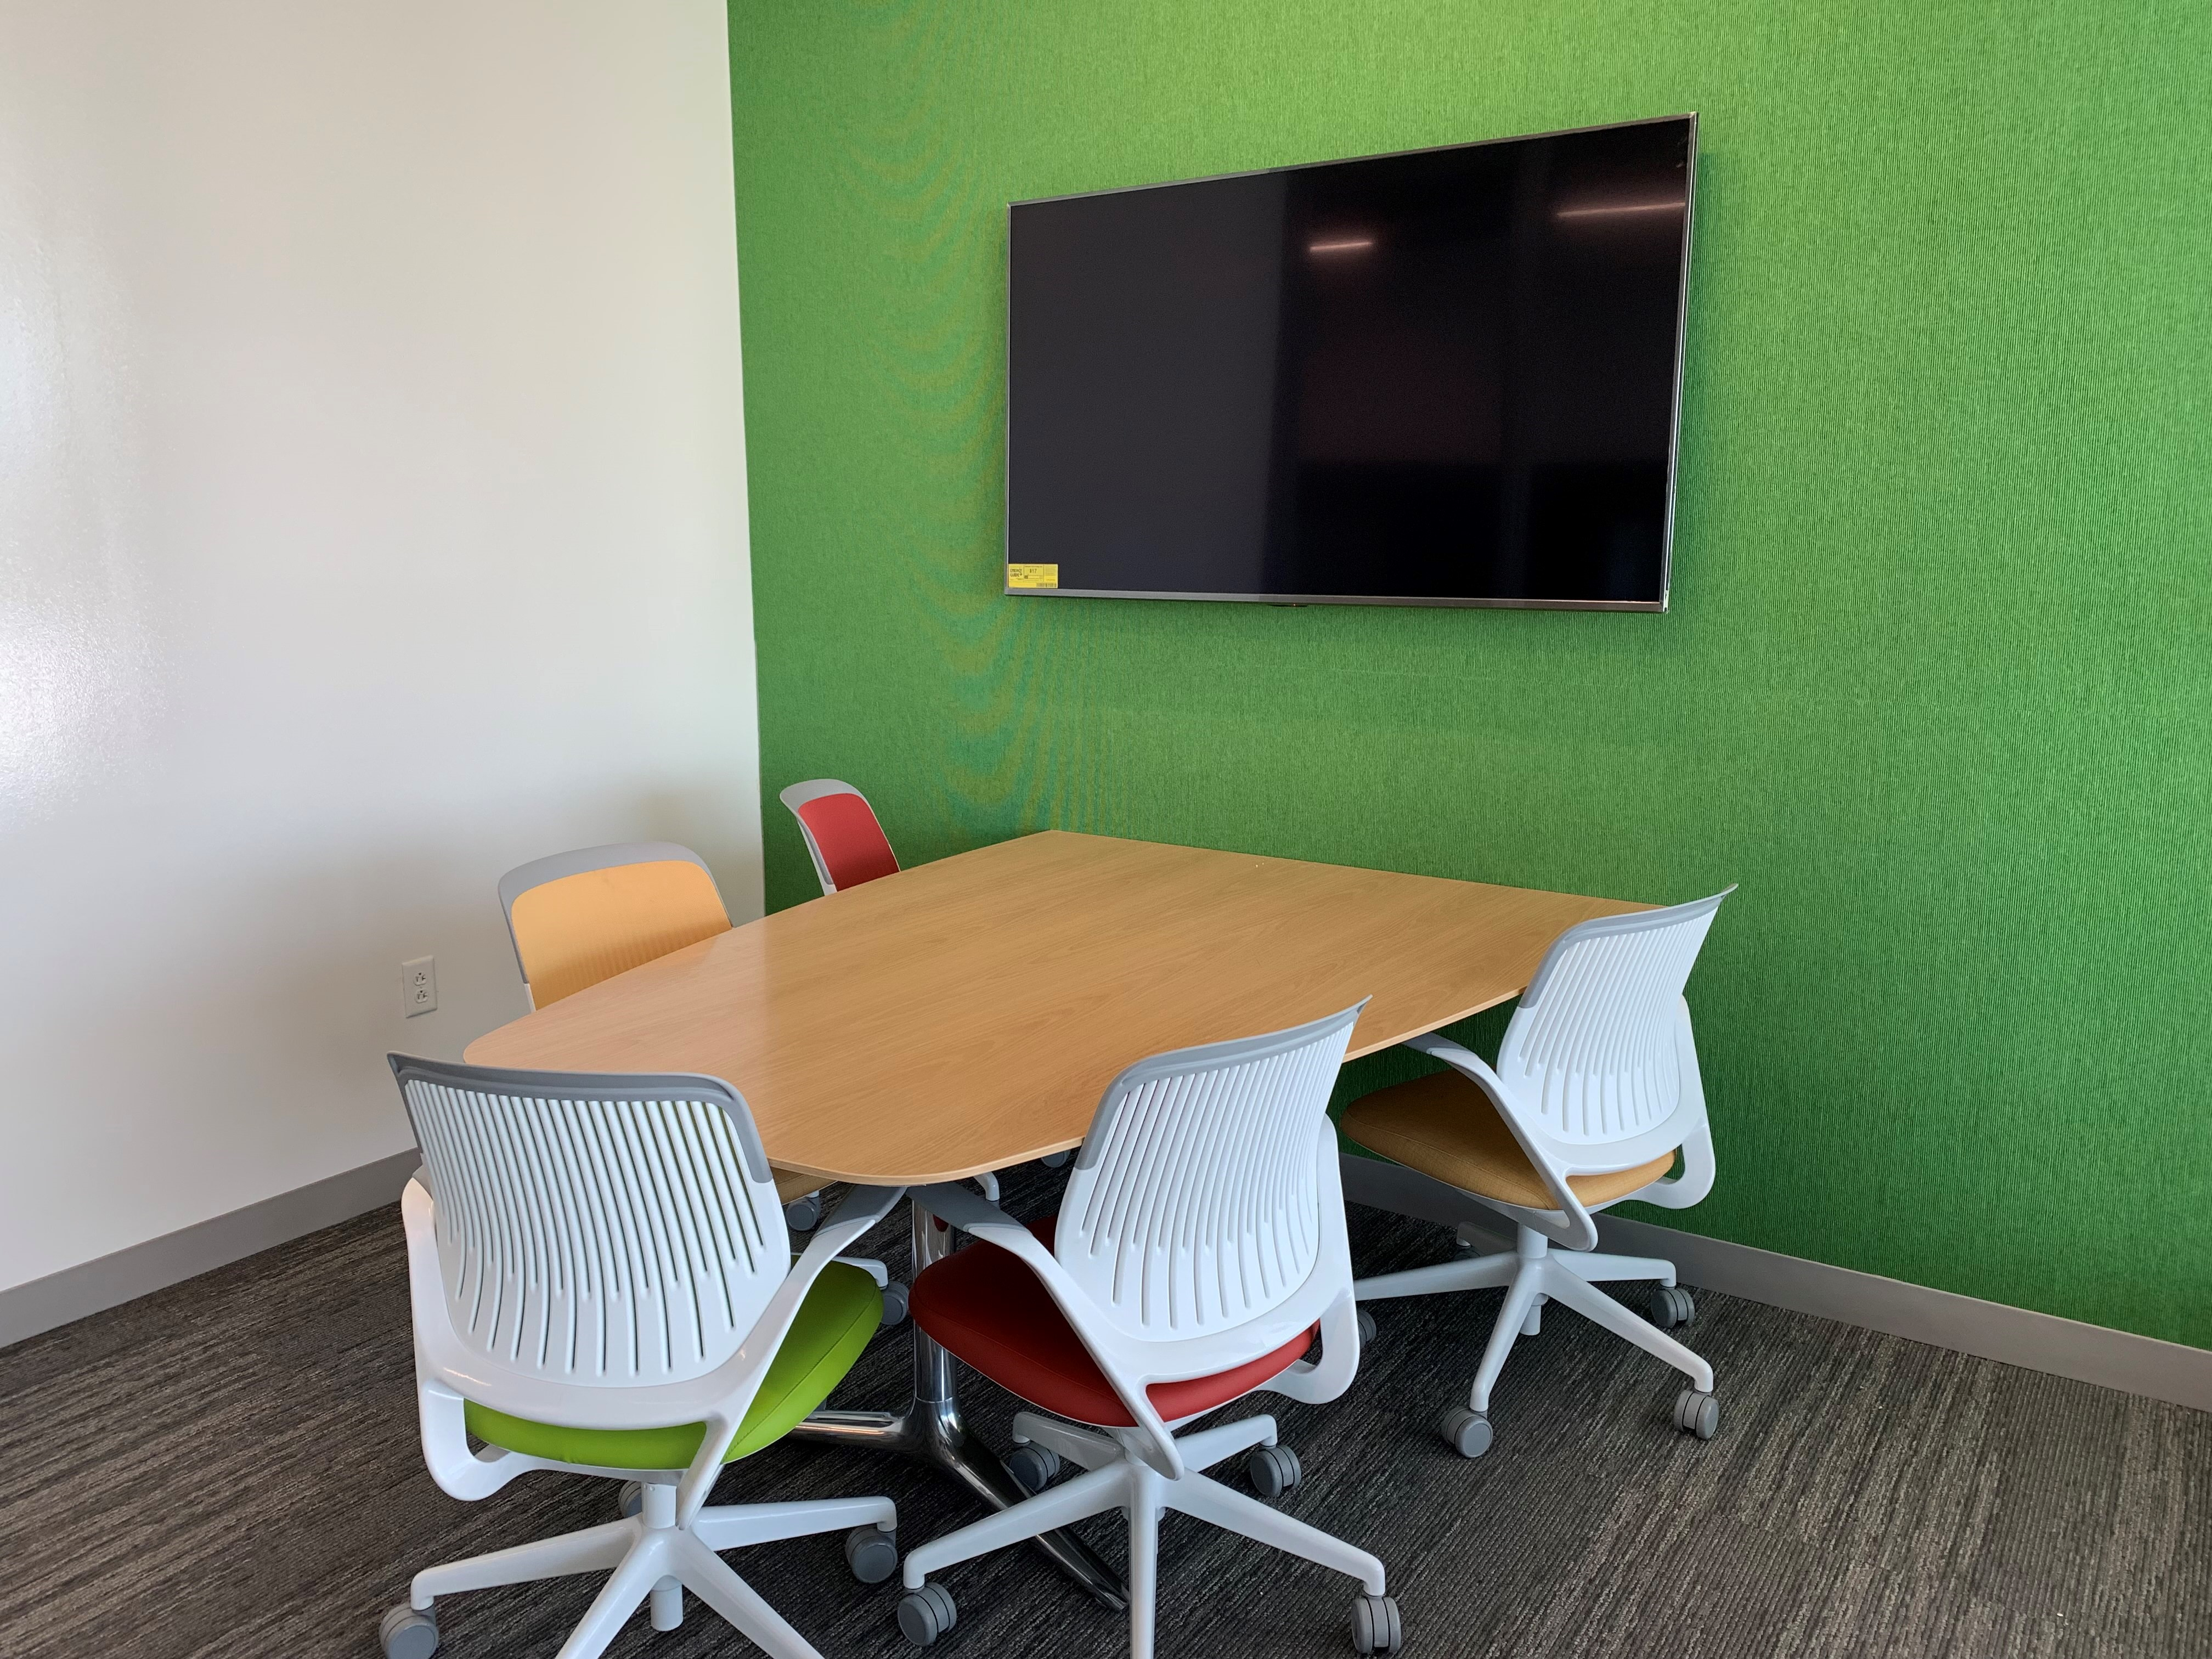 study room with green wall table and chairs